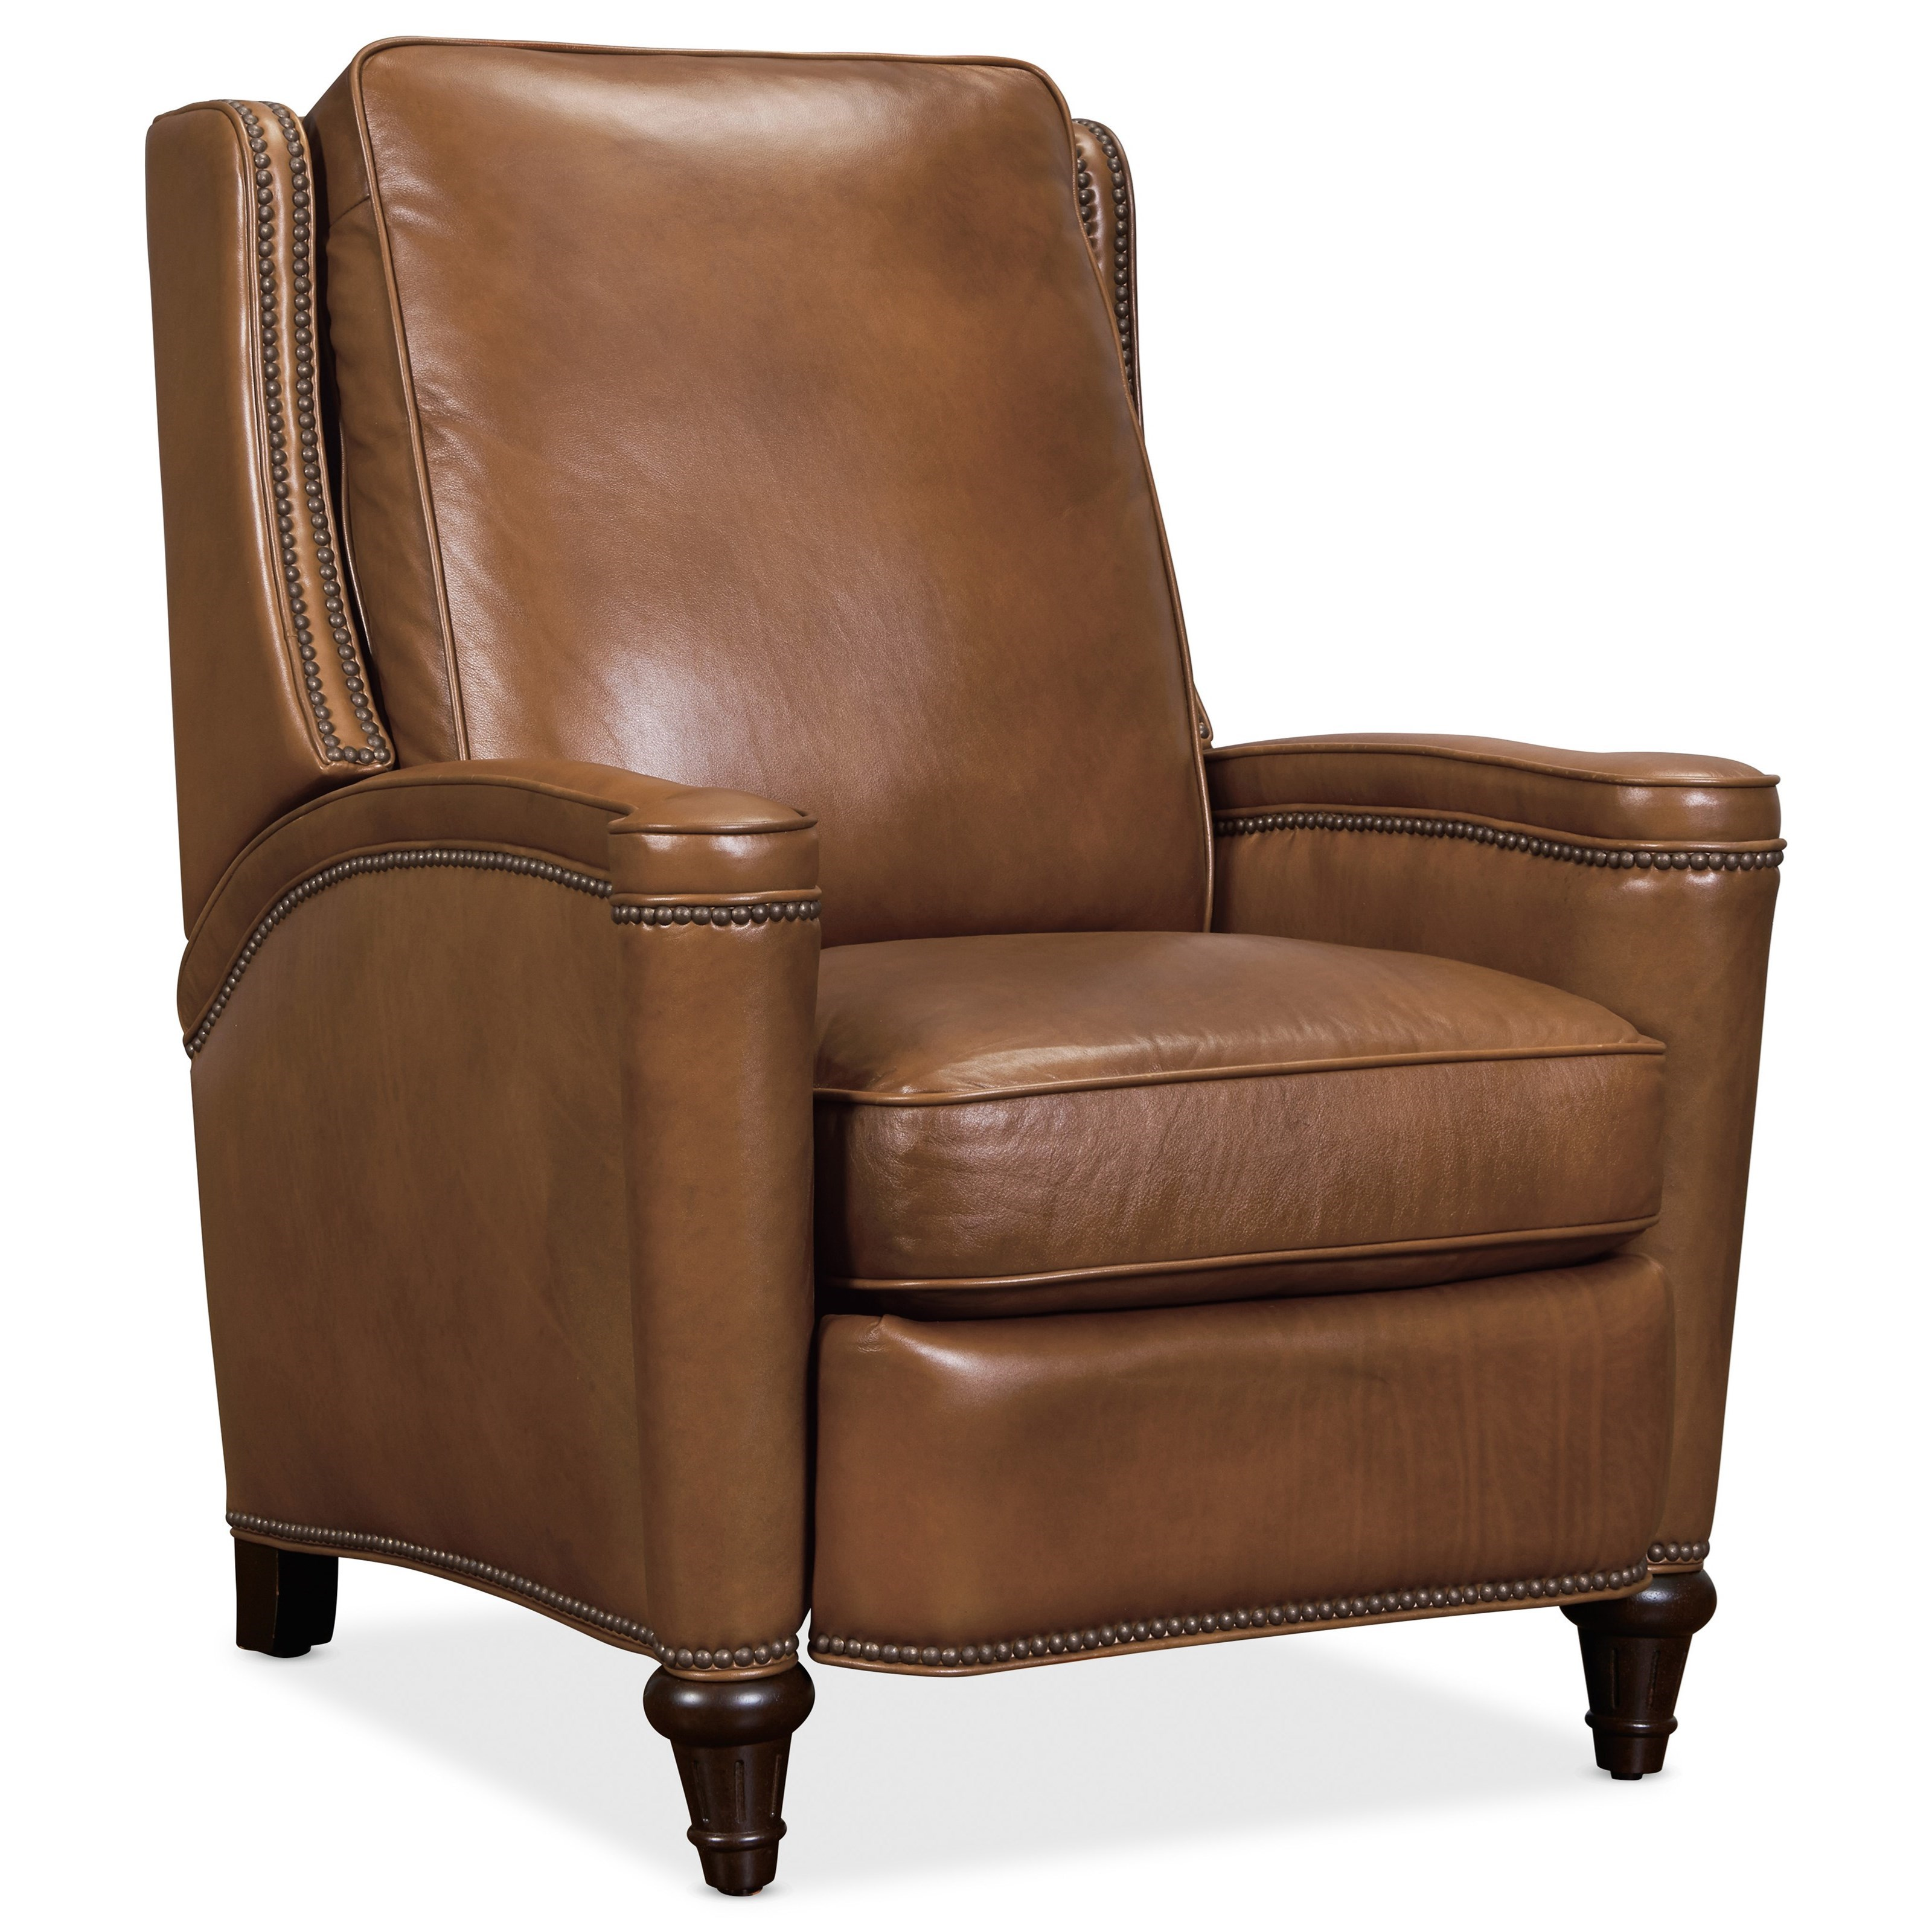 Rylea Push Back Recliner by Hooker Furniture at Johnny Janosik